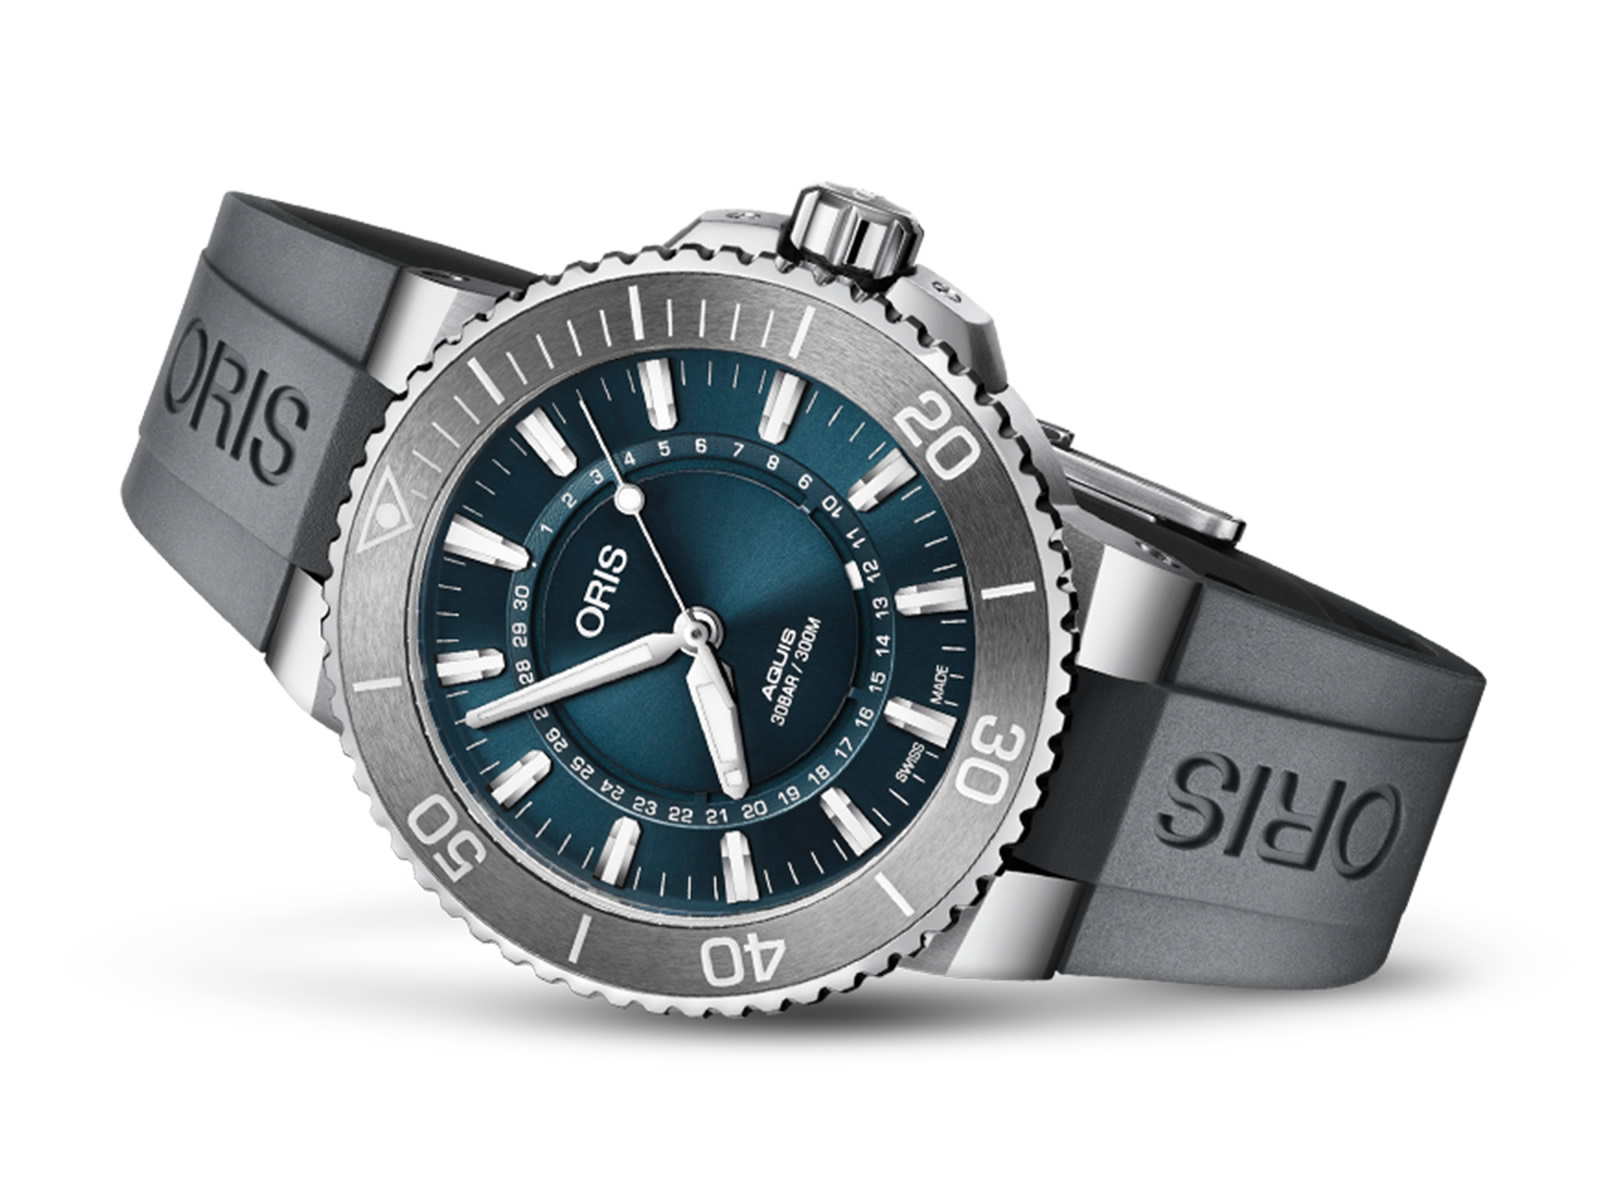 01-733-7730-4125-oris-source-of-life-limited-edition-10-.jpg